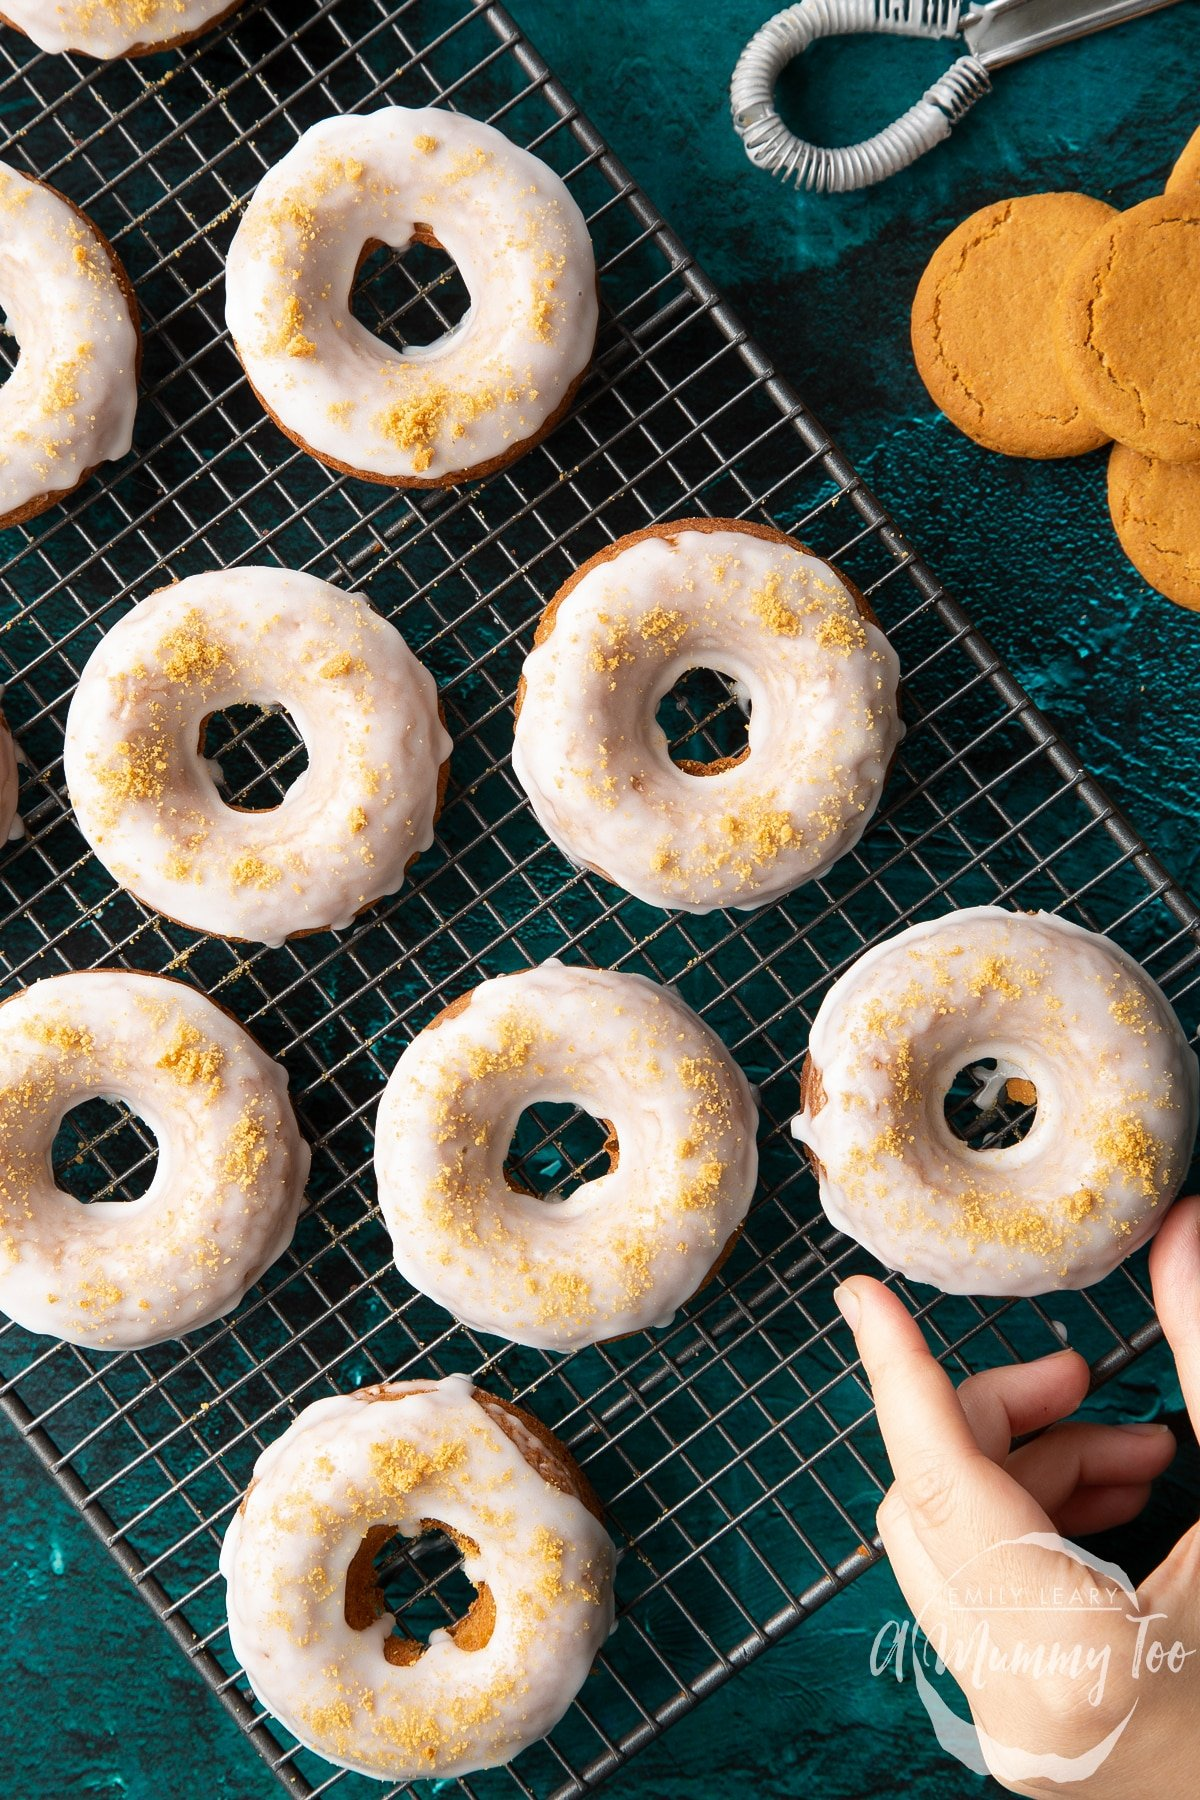 Baked gingerbread donuts with a lemon glaze on a wire cooling rack. A hand reaches for one. Shown from above.